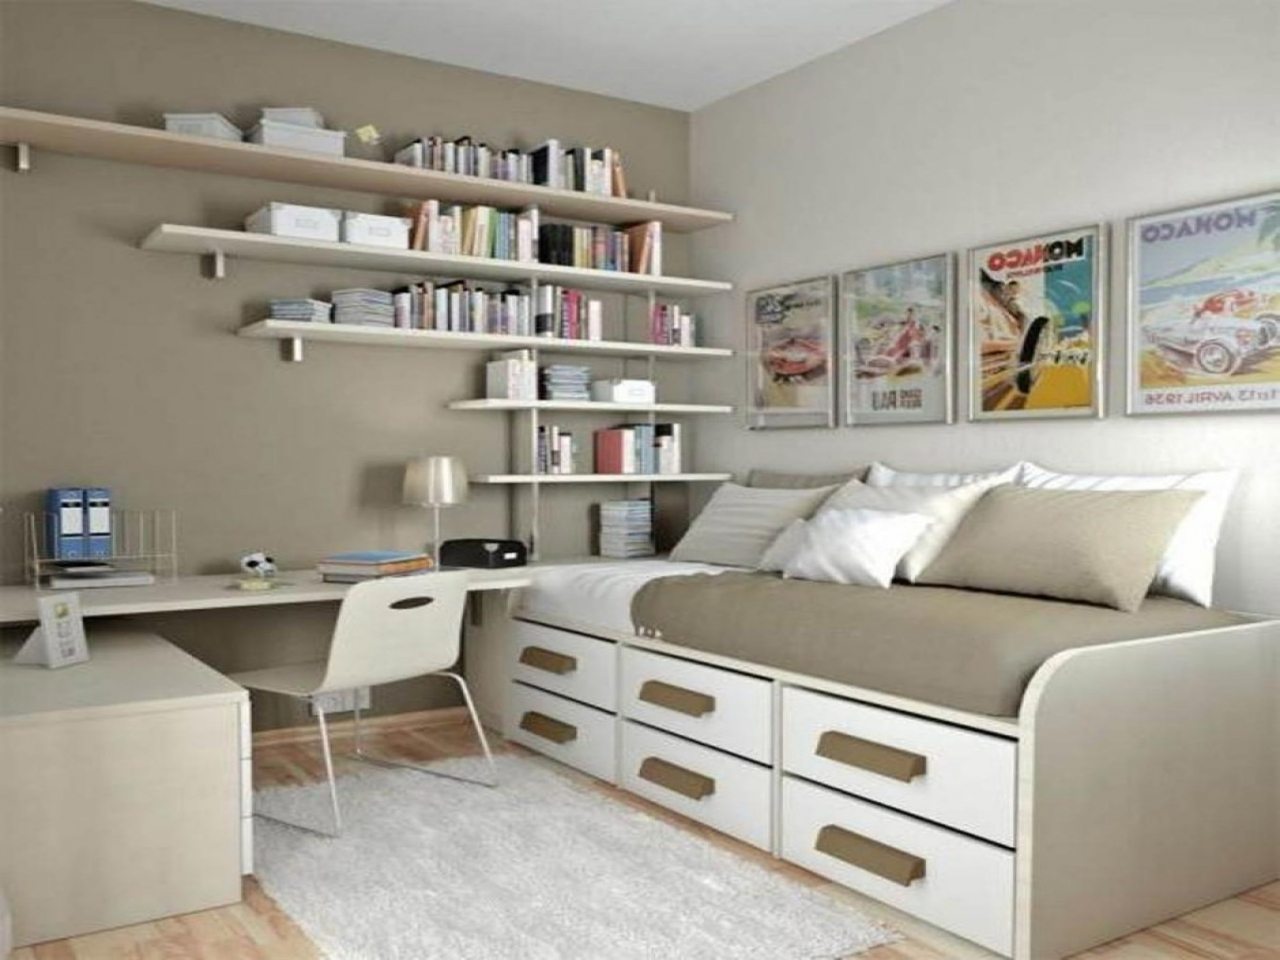 Small Bedroom Office Ideas - ACNN DECOR